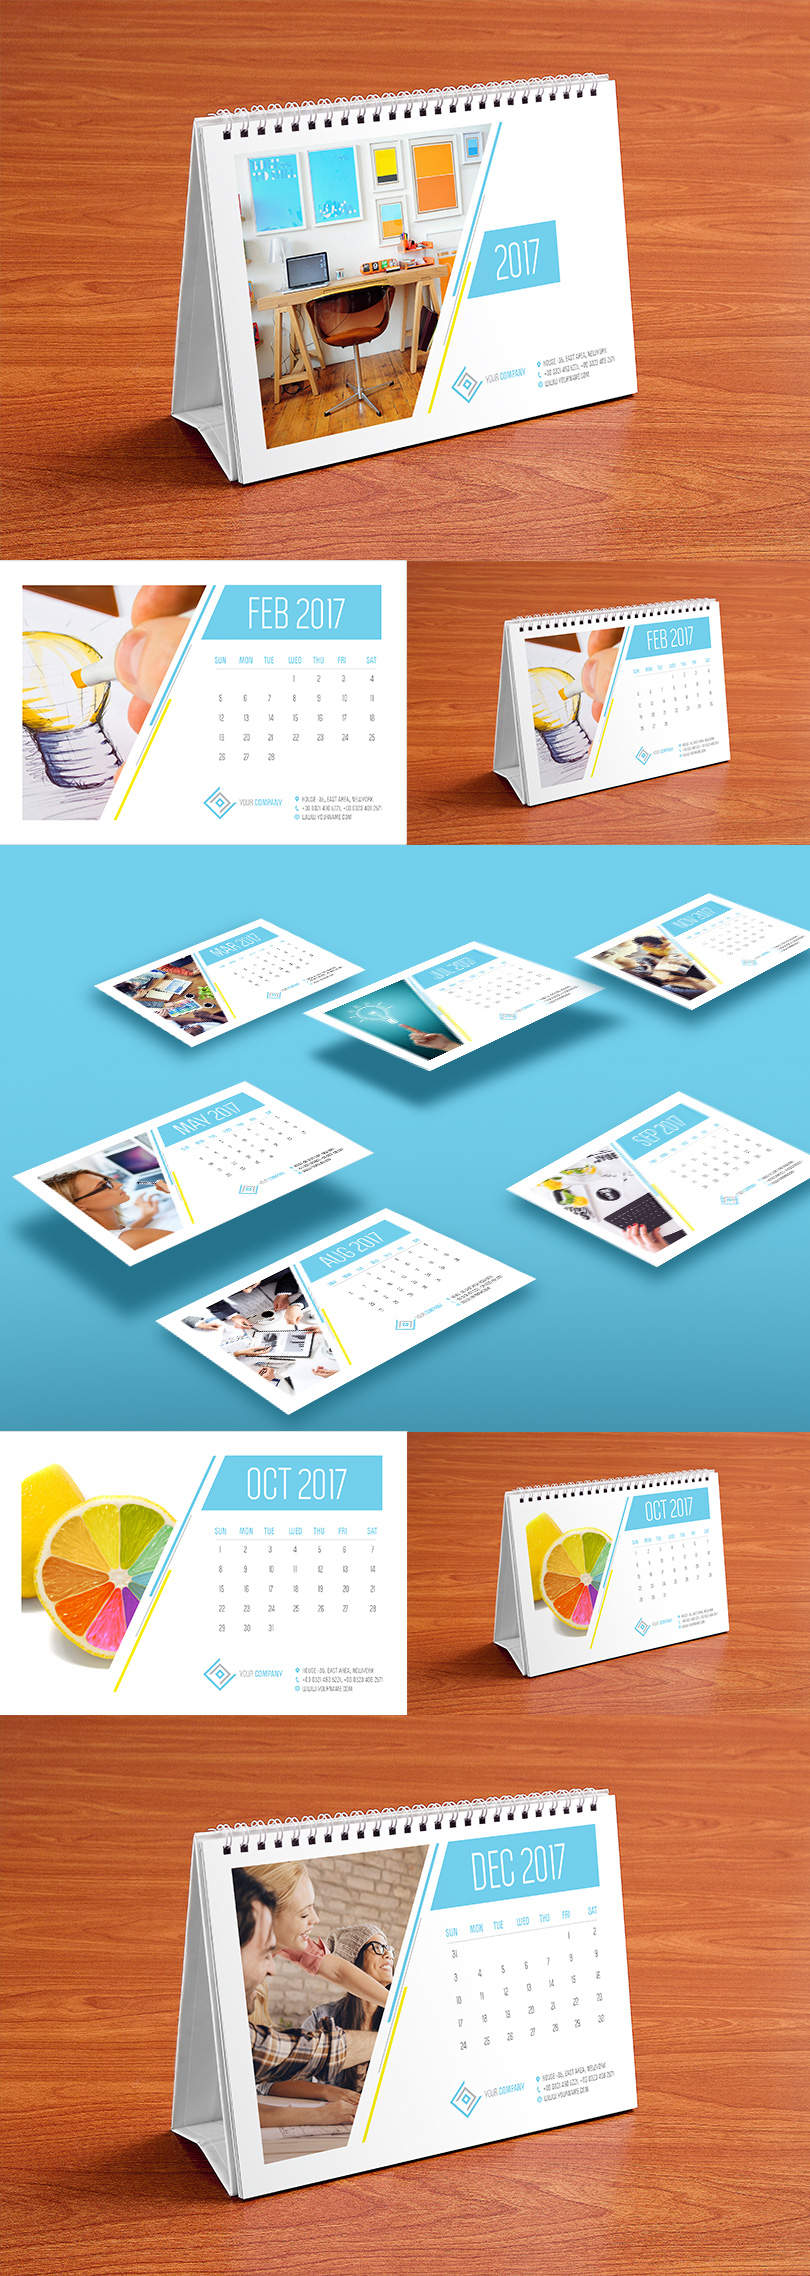 Calendar Design Pictures : Table calendar design template and mock up psd